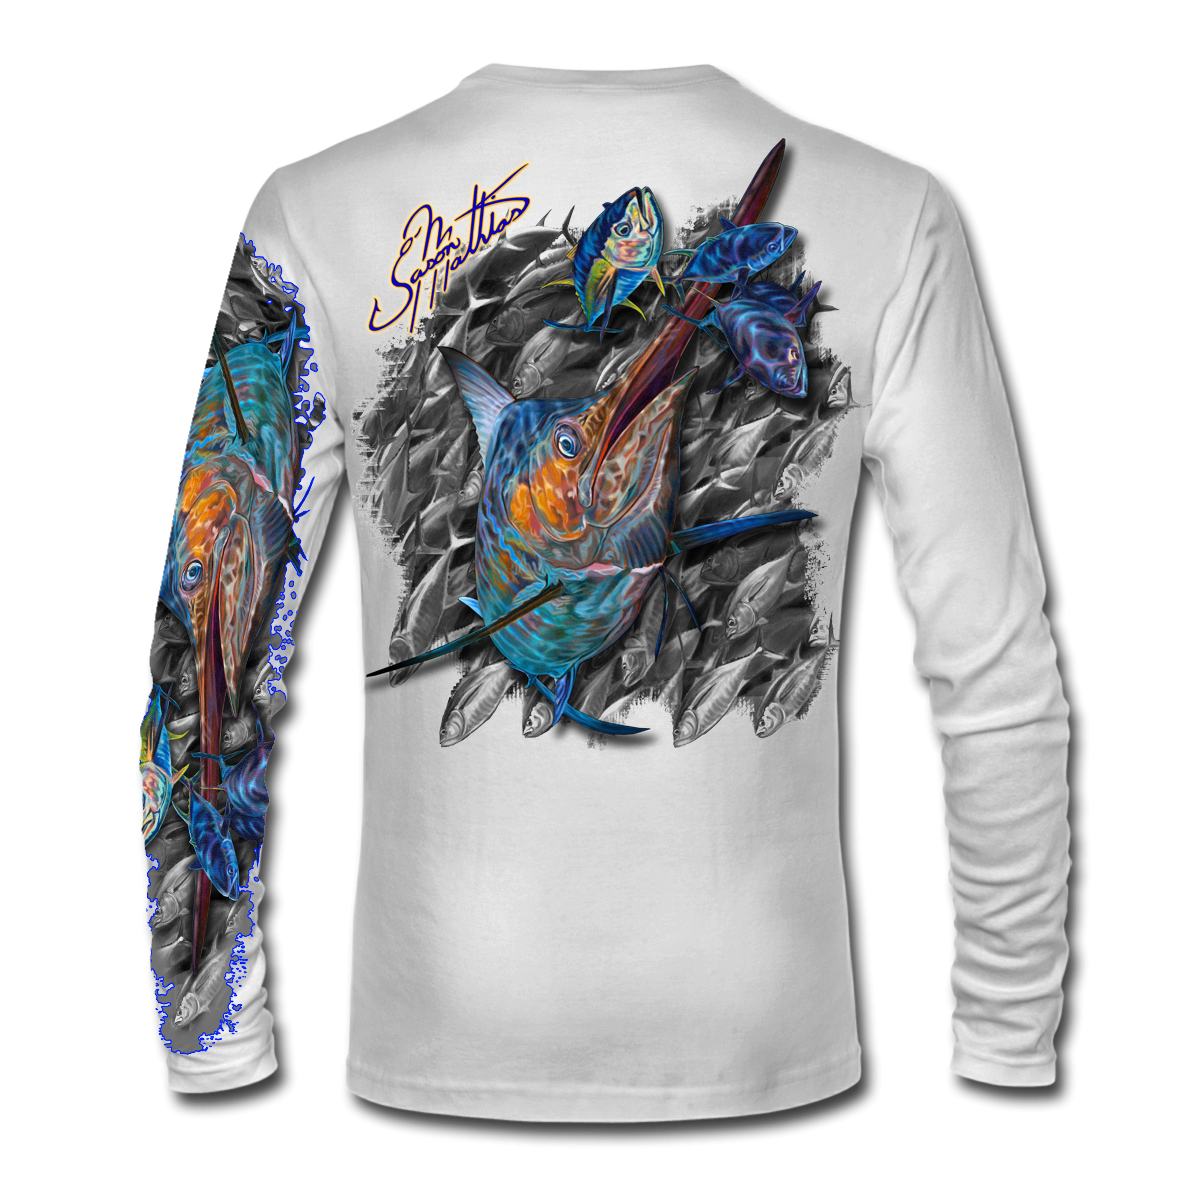 blue-marlin-shirt-white-back-jason-mathias.png